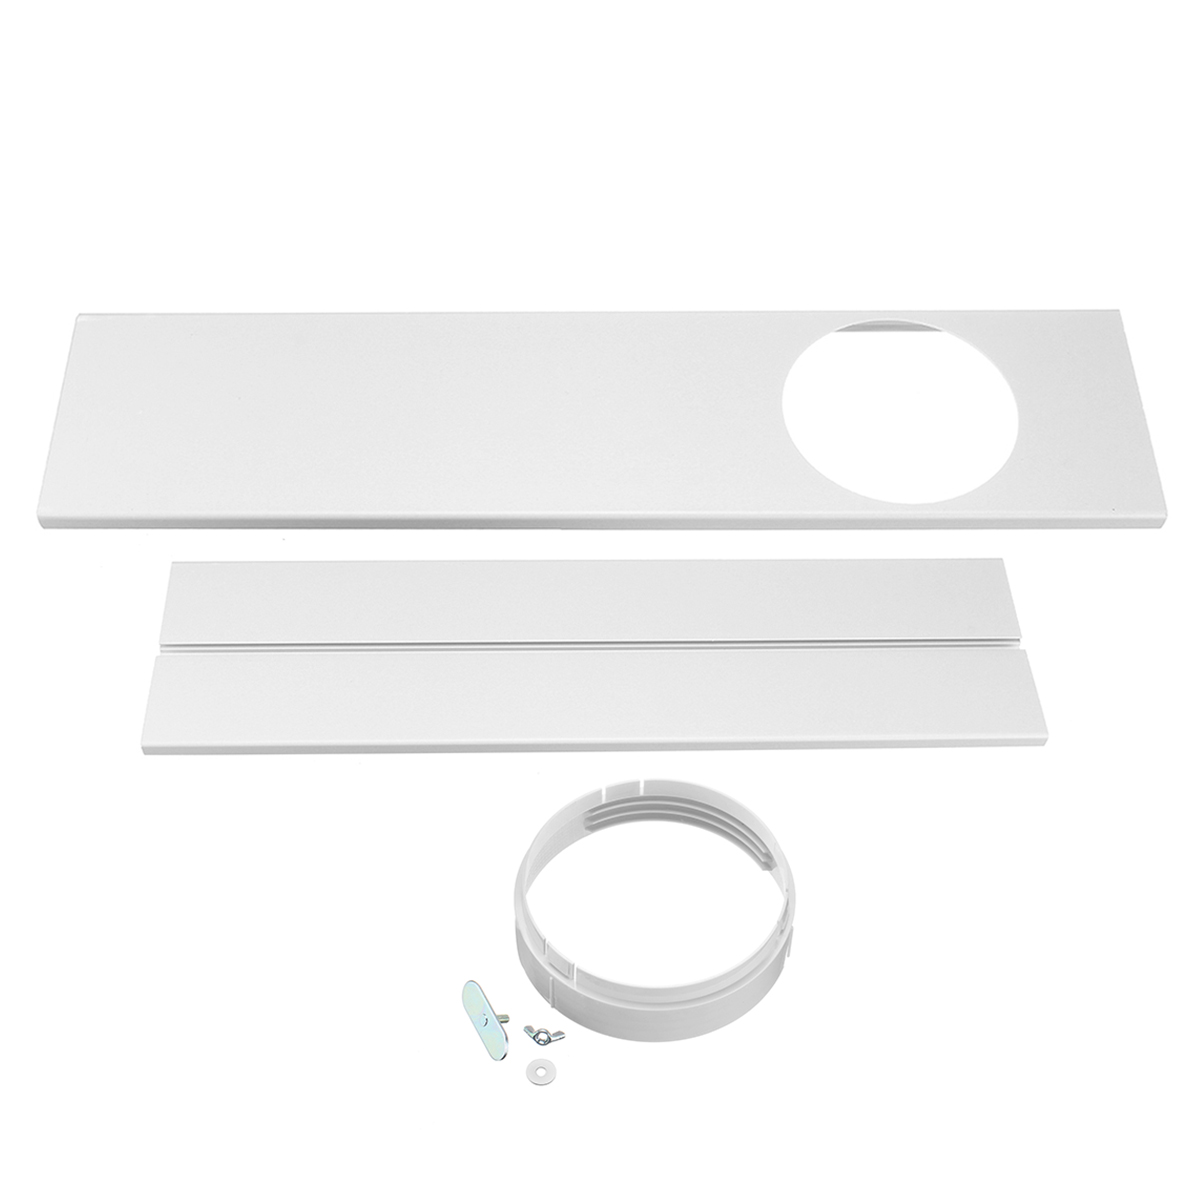 120cm Adjustable Air Conditioner Window Kit Plate For Exhaust Hose Tube Connector